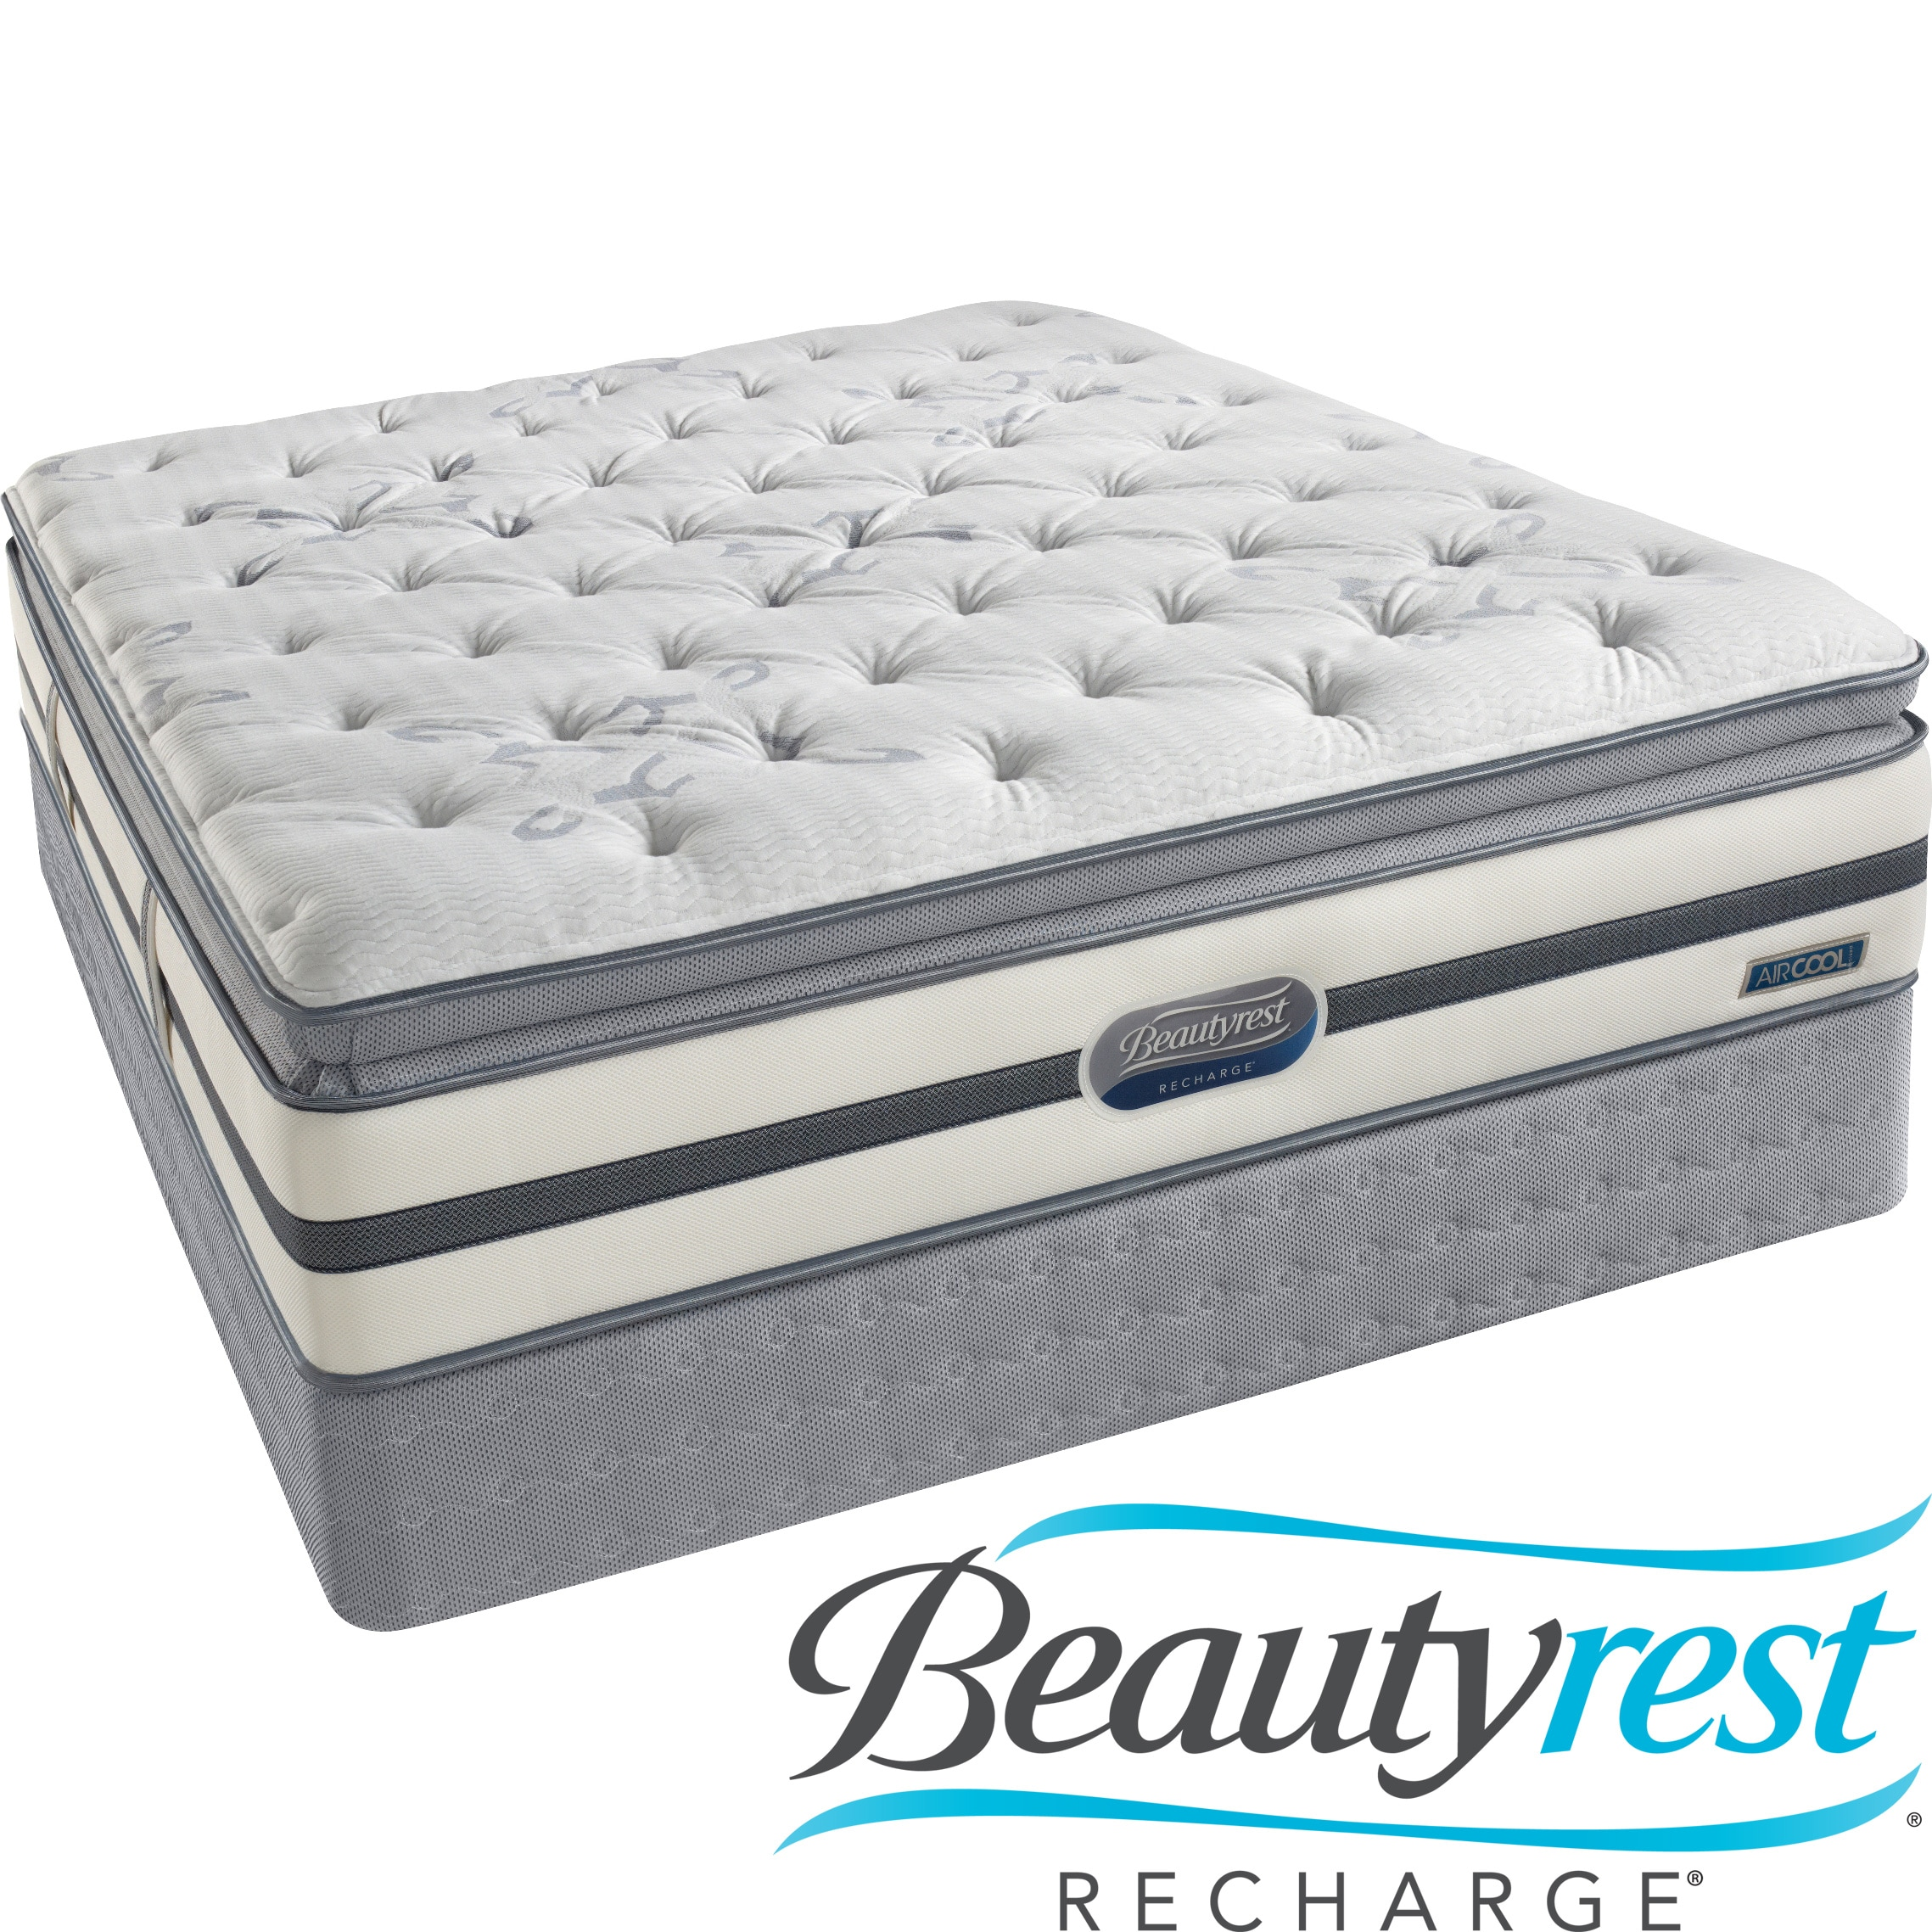 Beautyrest recharge spalding luxury firm queen mattress set bed mattress sale Queen size mattress price